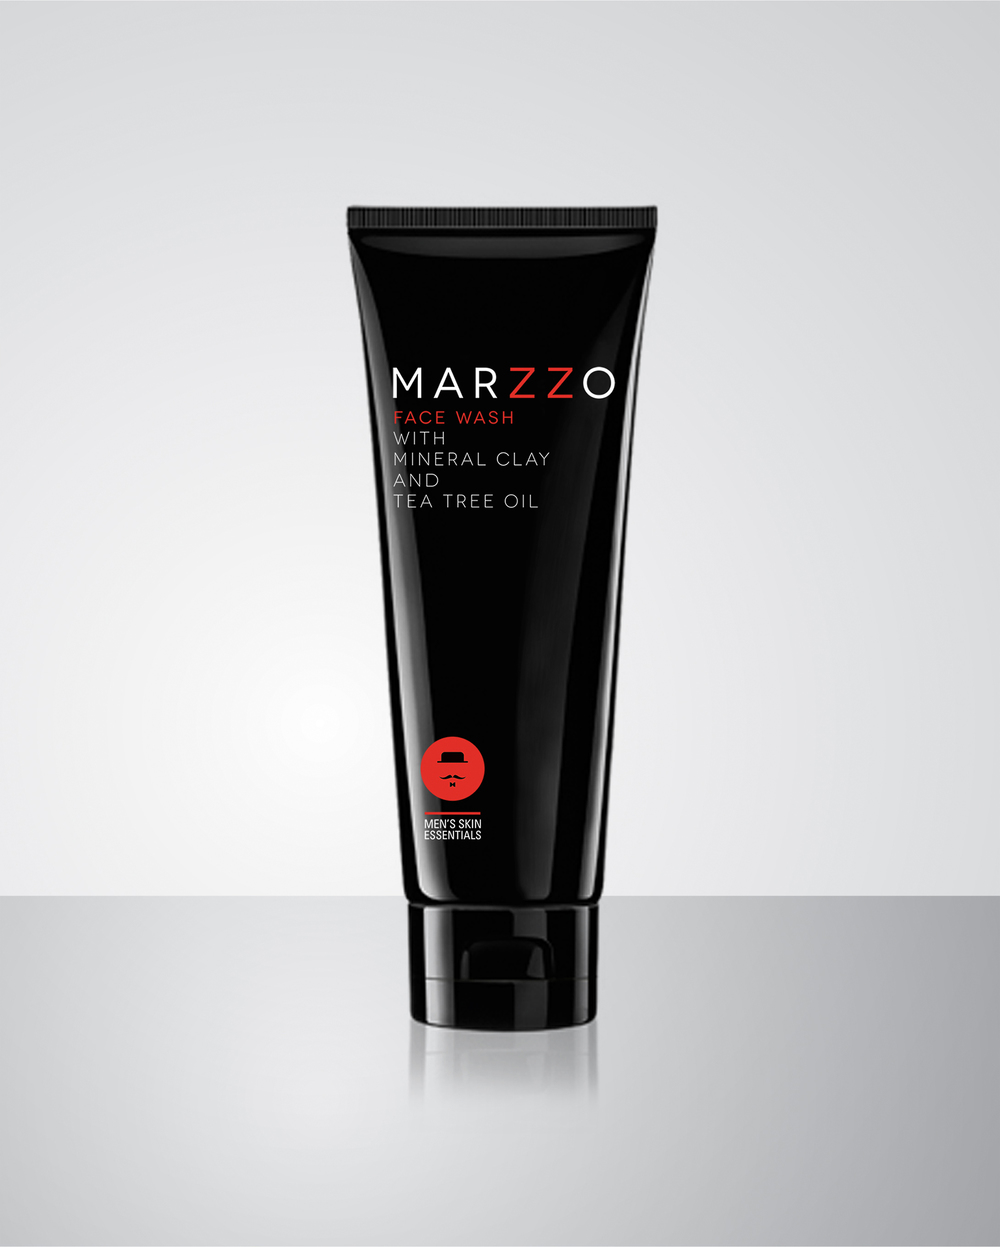 MARZZO-FACE-WASH_NEW.jpg